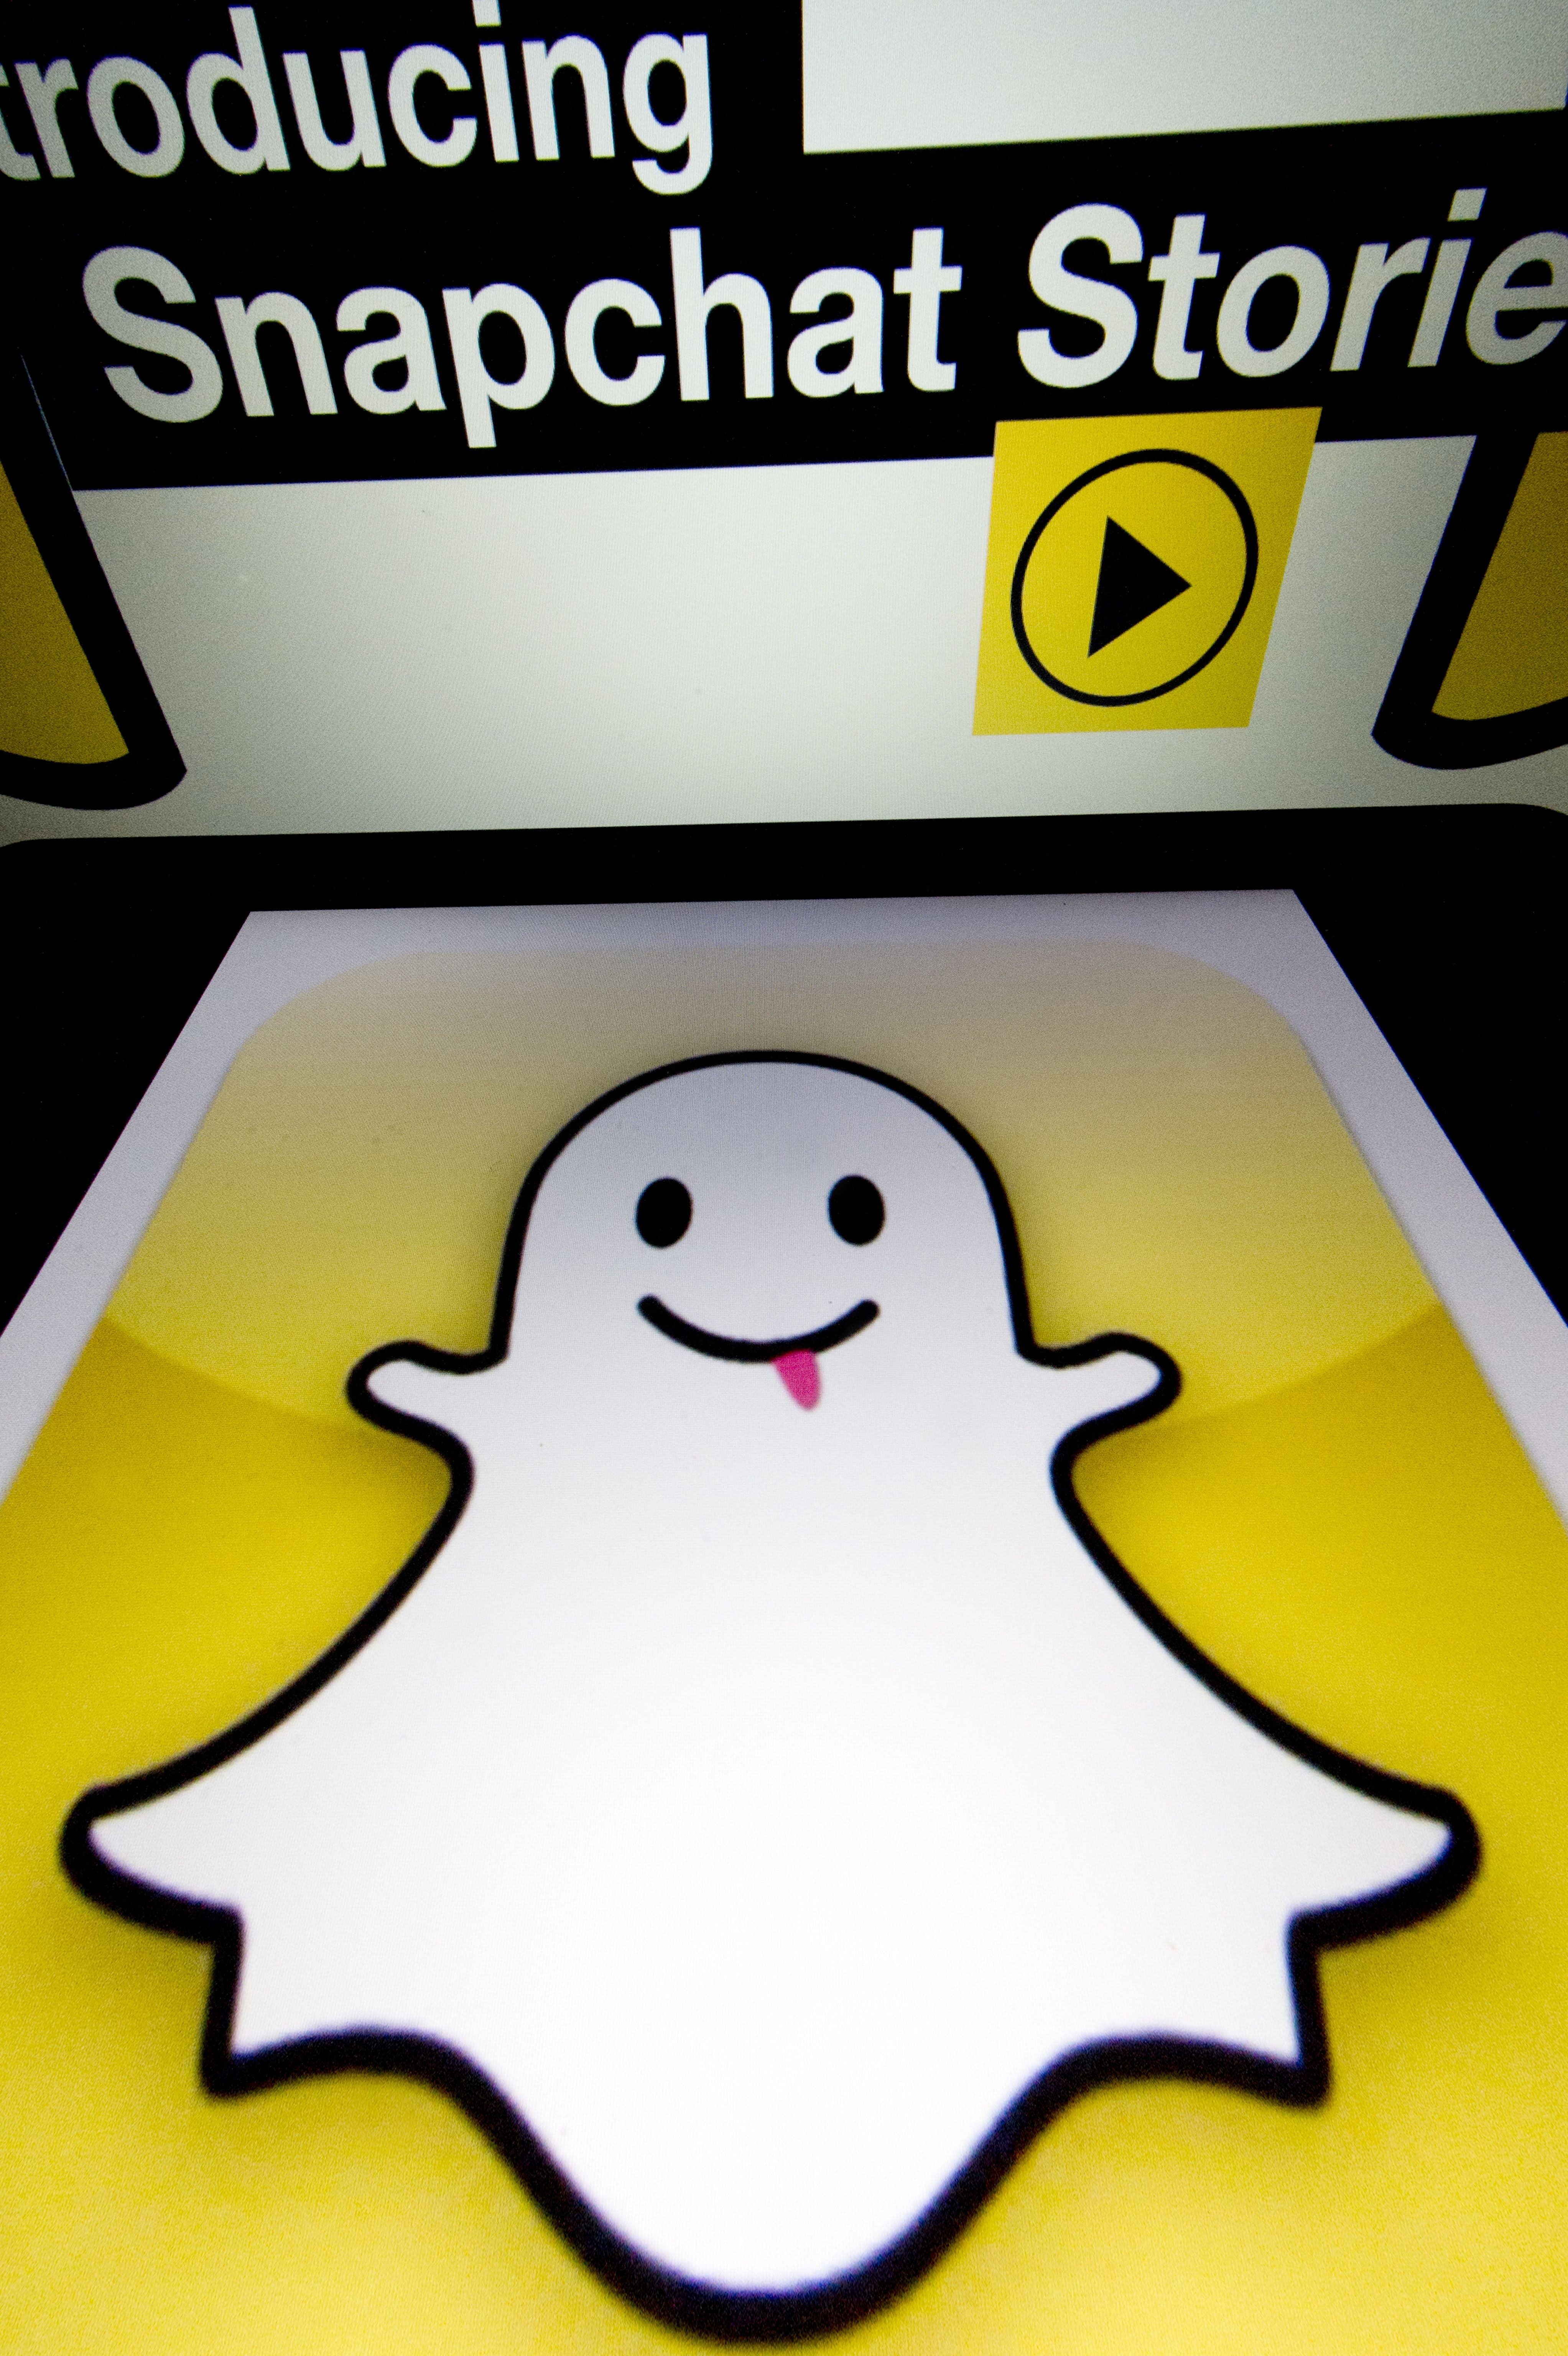 What does fruit on snapchat stories mean its a game reportedly what does fruit on snapchat stories mean its a game reportedly started by teenagers buycottarizona Choice Image